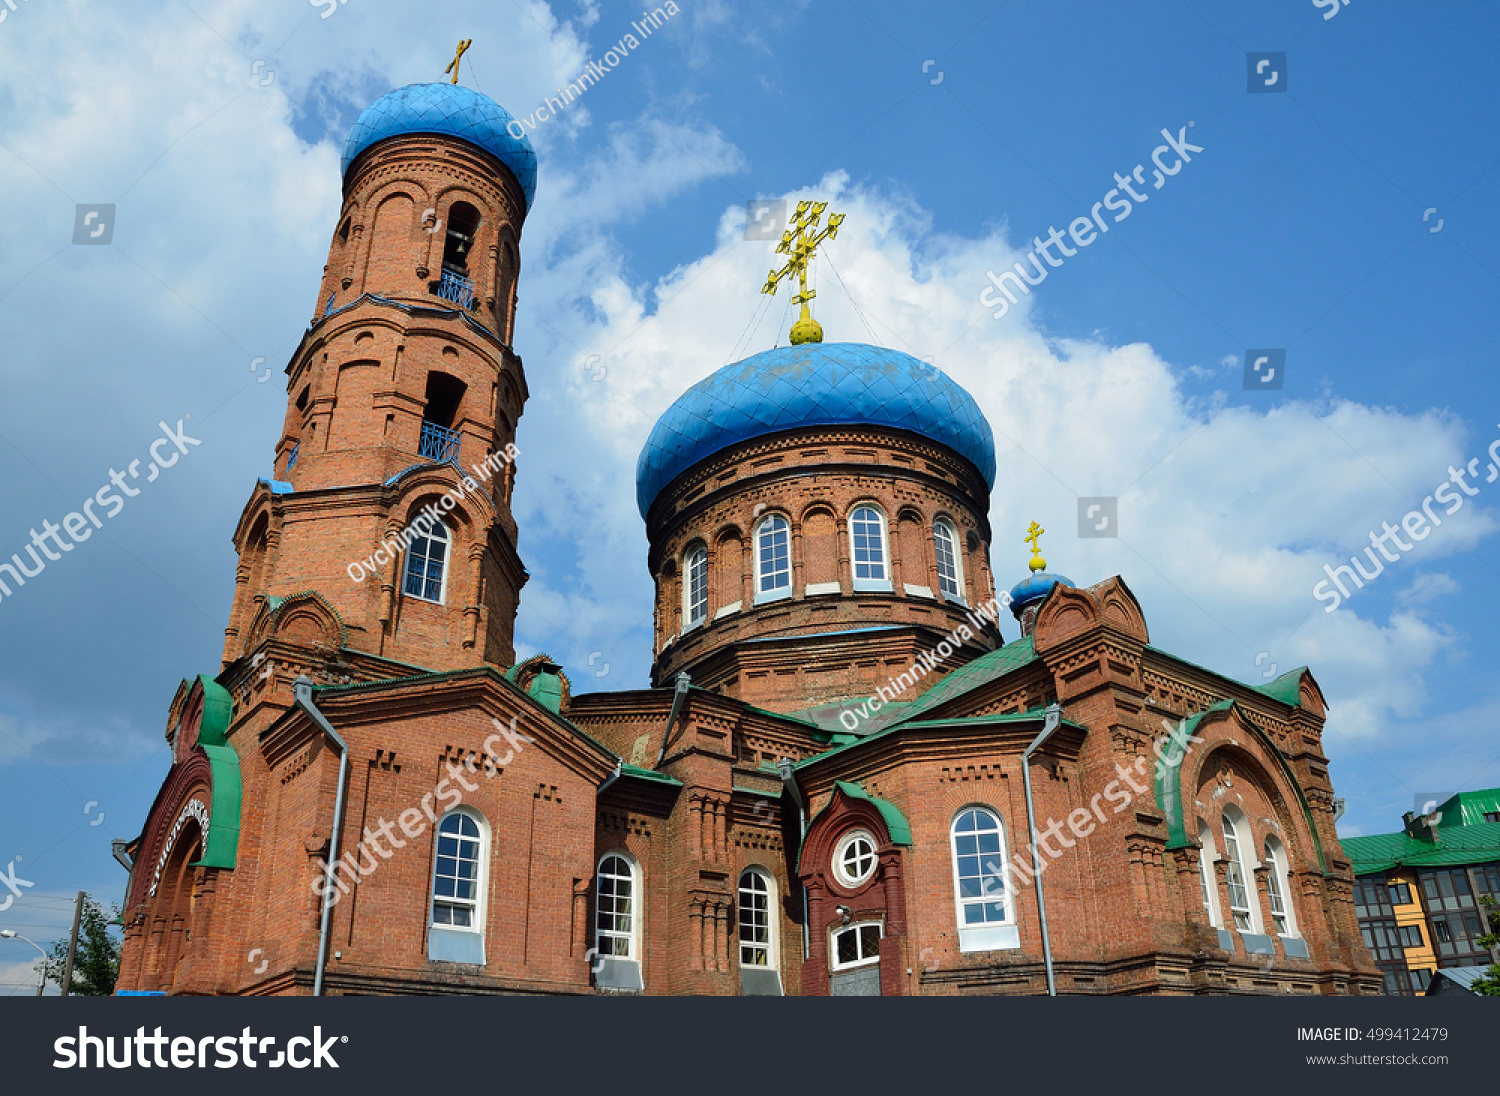 Pokrovsky Cathedral of Barnaul - shrine of the Altai Territory